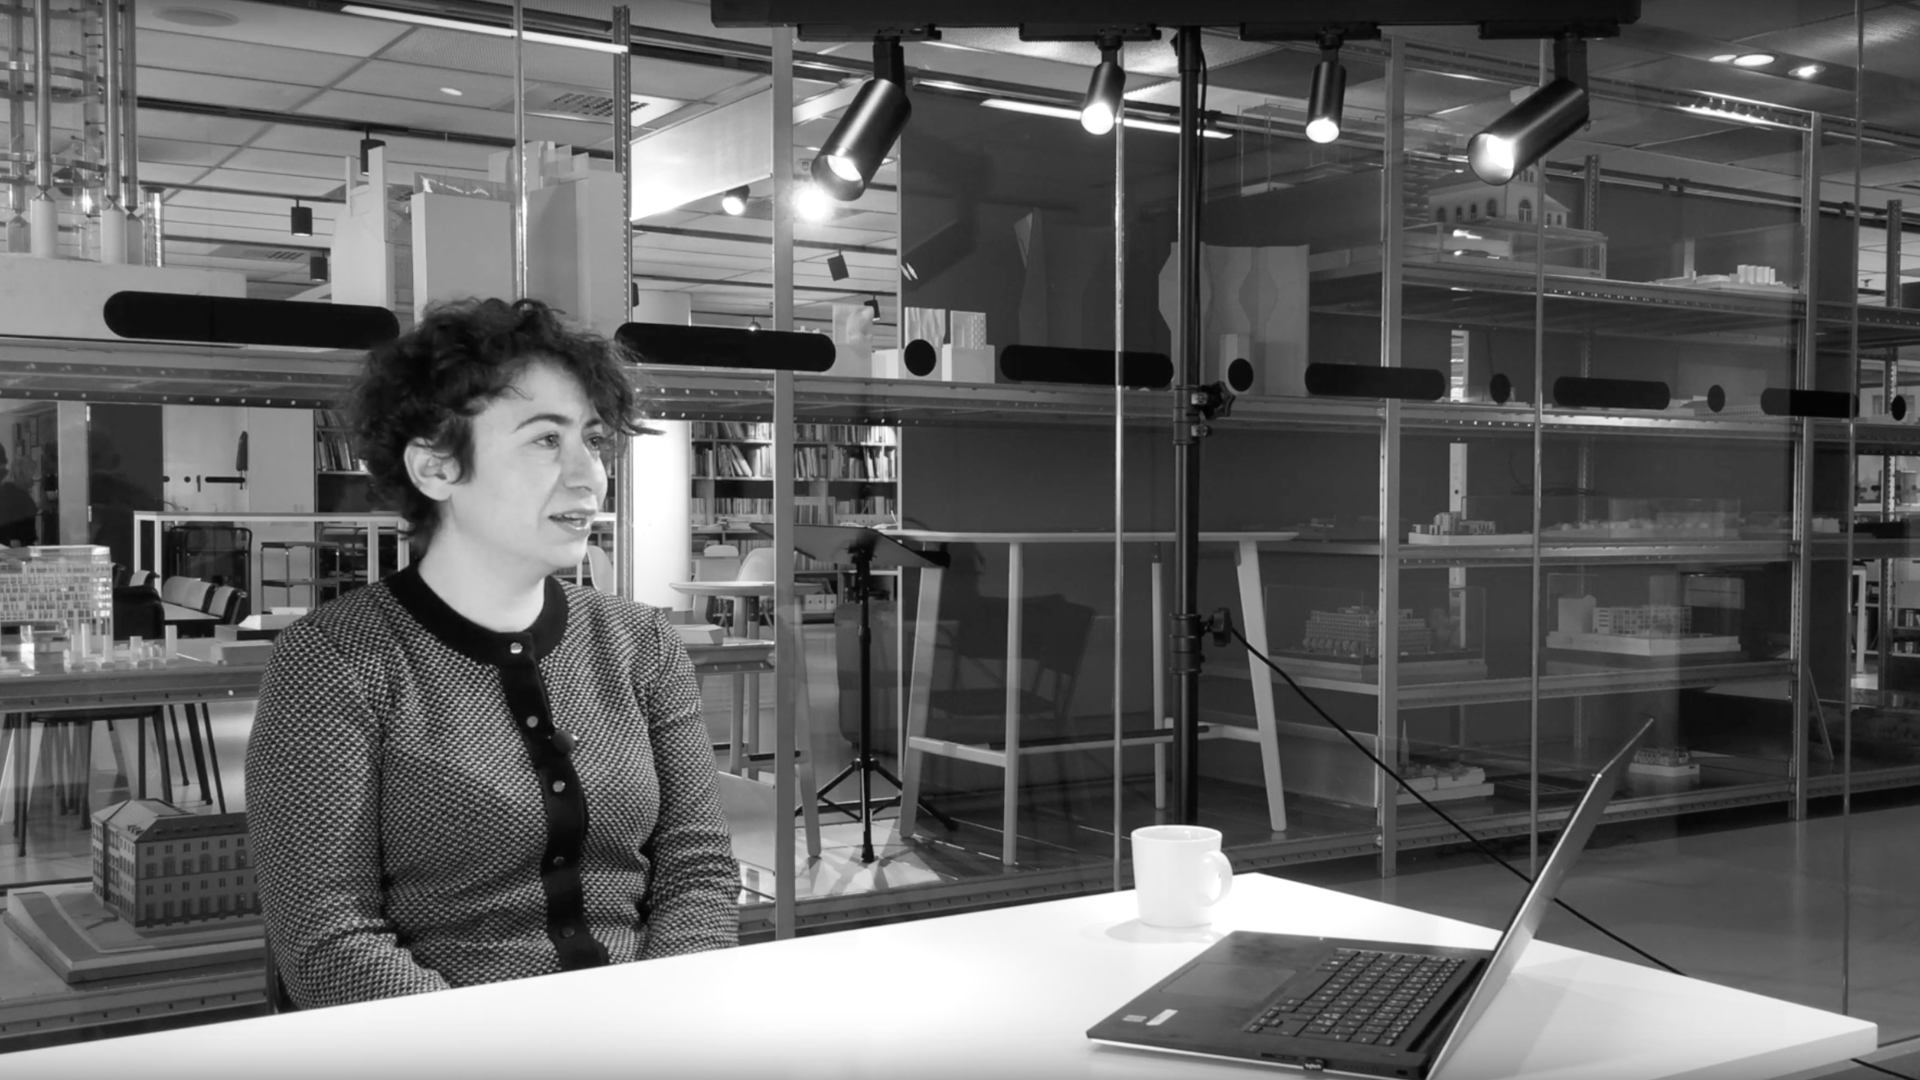 An interview with Chiara Carucci, from Tengbom, for Women in Lighting| Chiara Carucci| Tengbom| Women in Lighting| The Light Collective| STIR